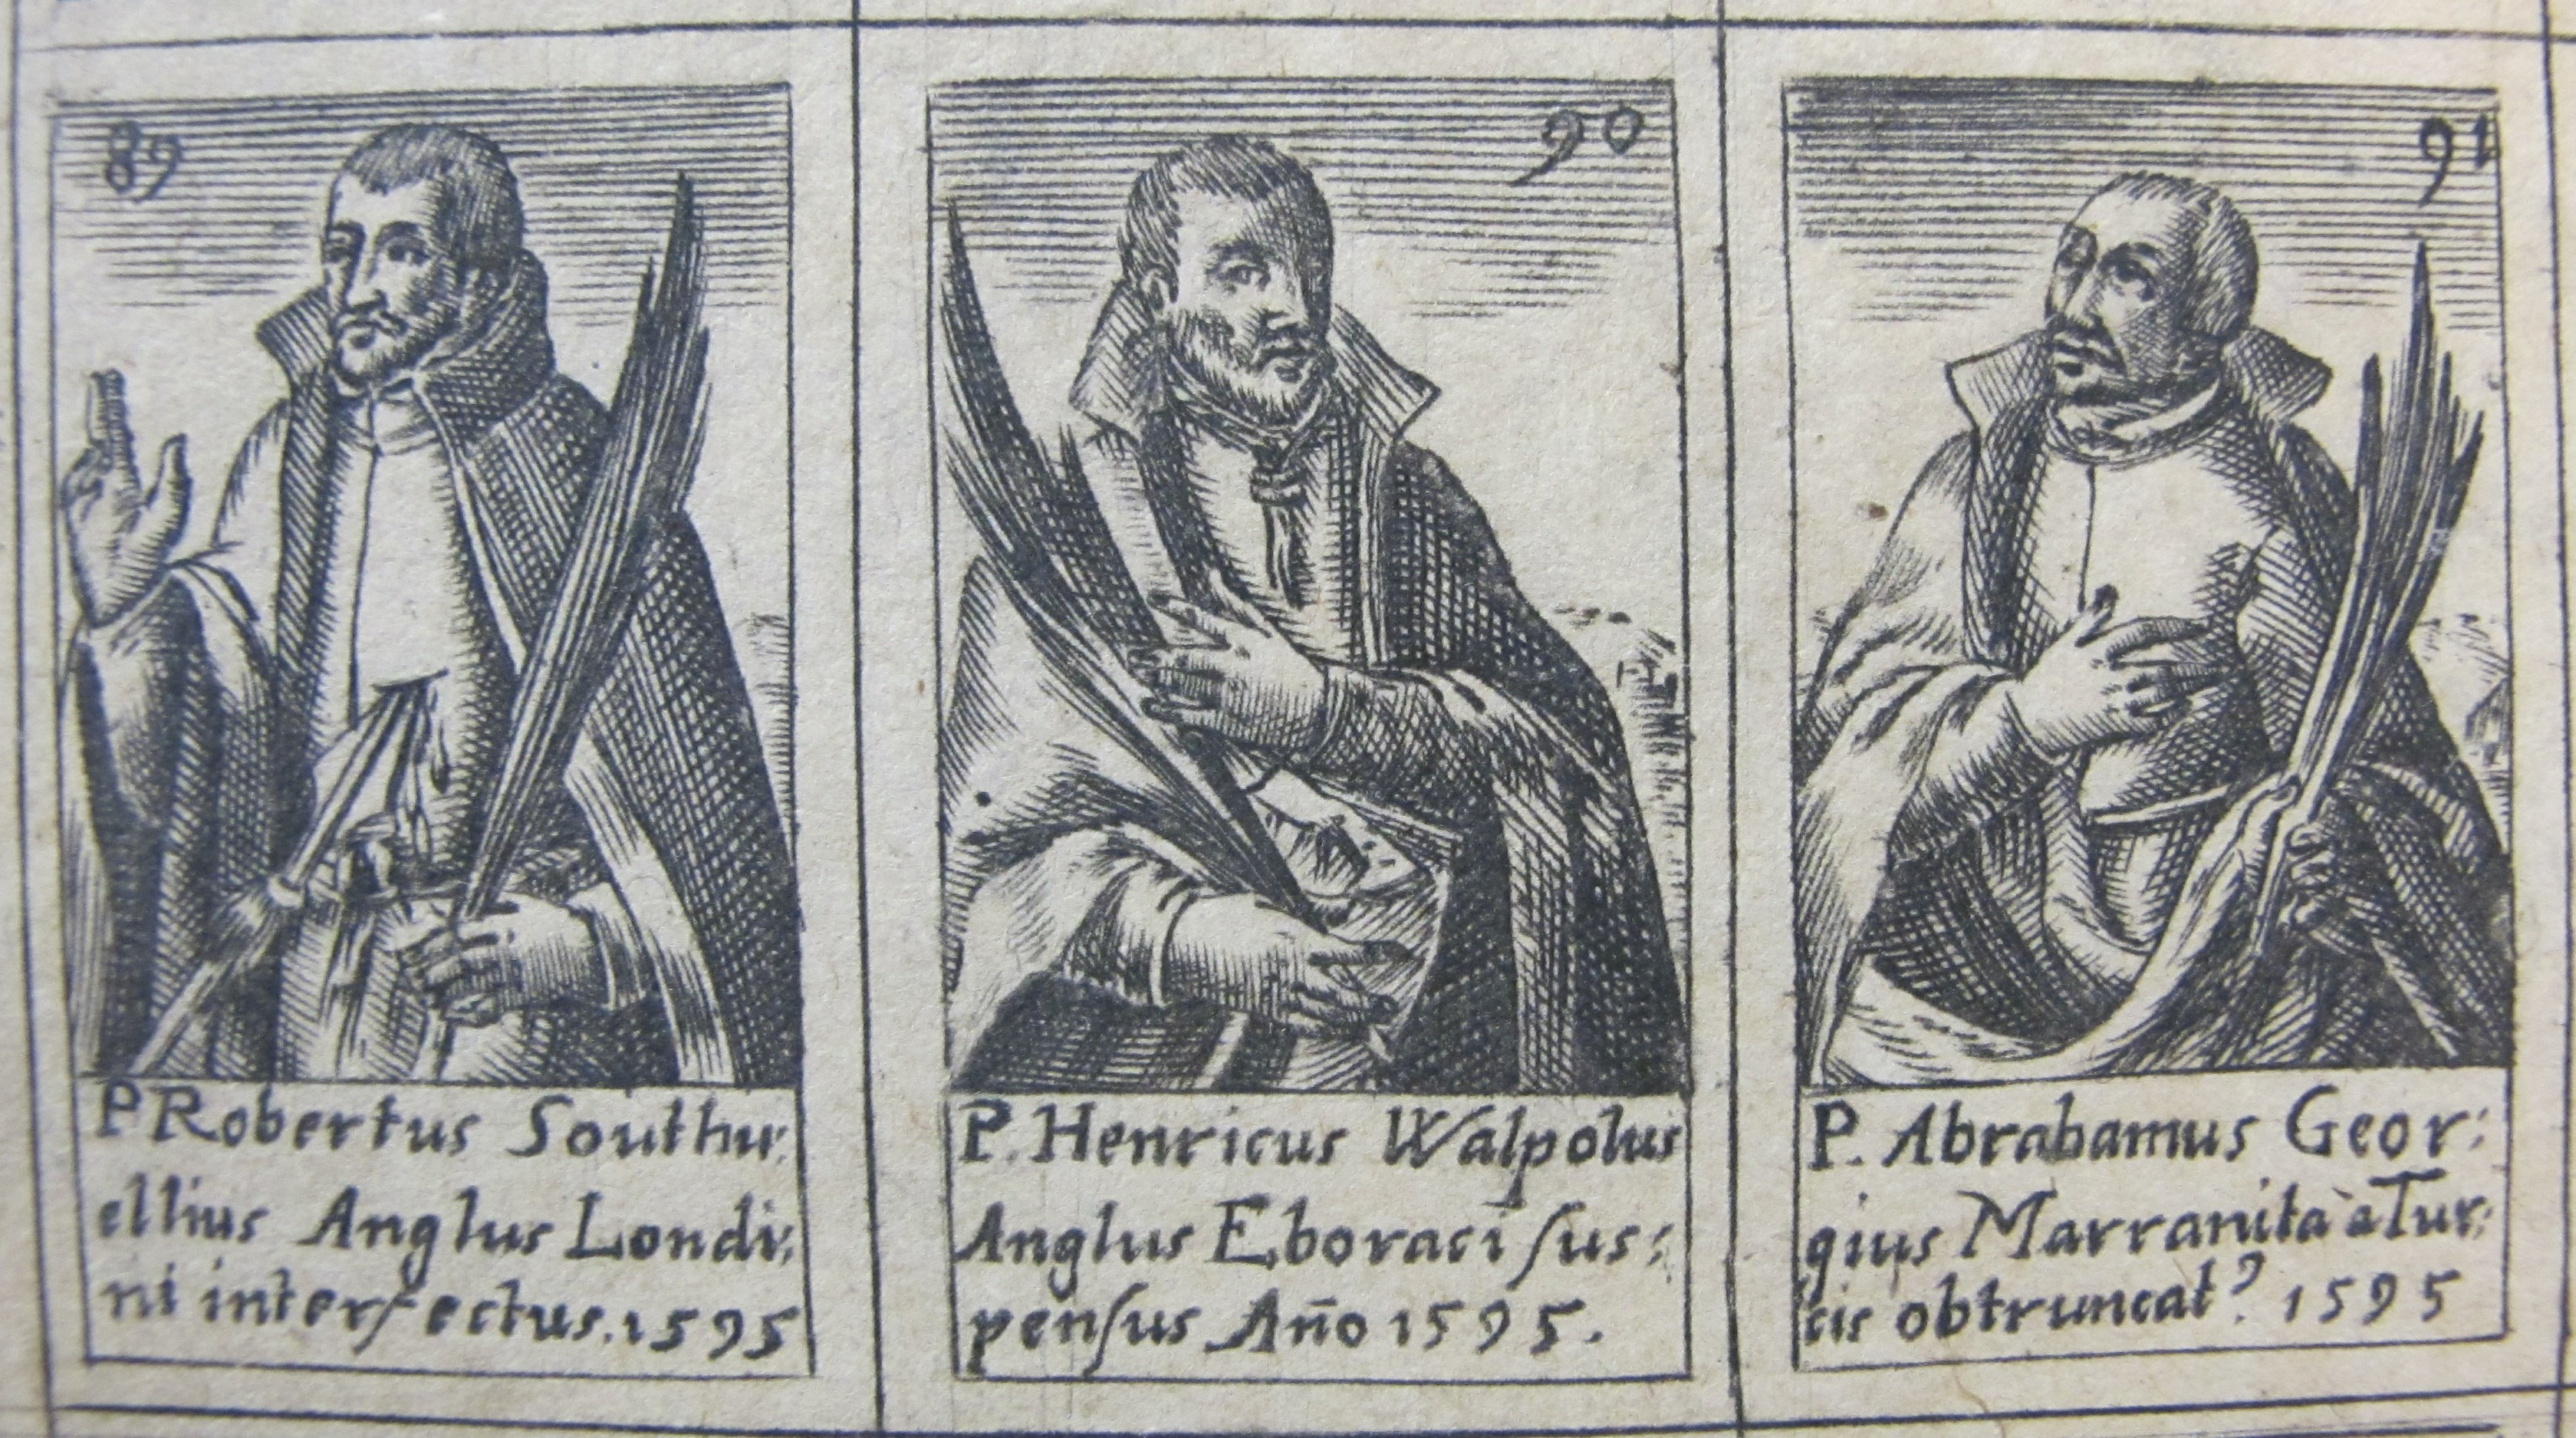 Three portraits of martyrs. Henry Walpole has a rope around his neck and a knife in his abdomen. He holds palm leaves in his right hand while his left hand is covering the right side of his chest